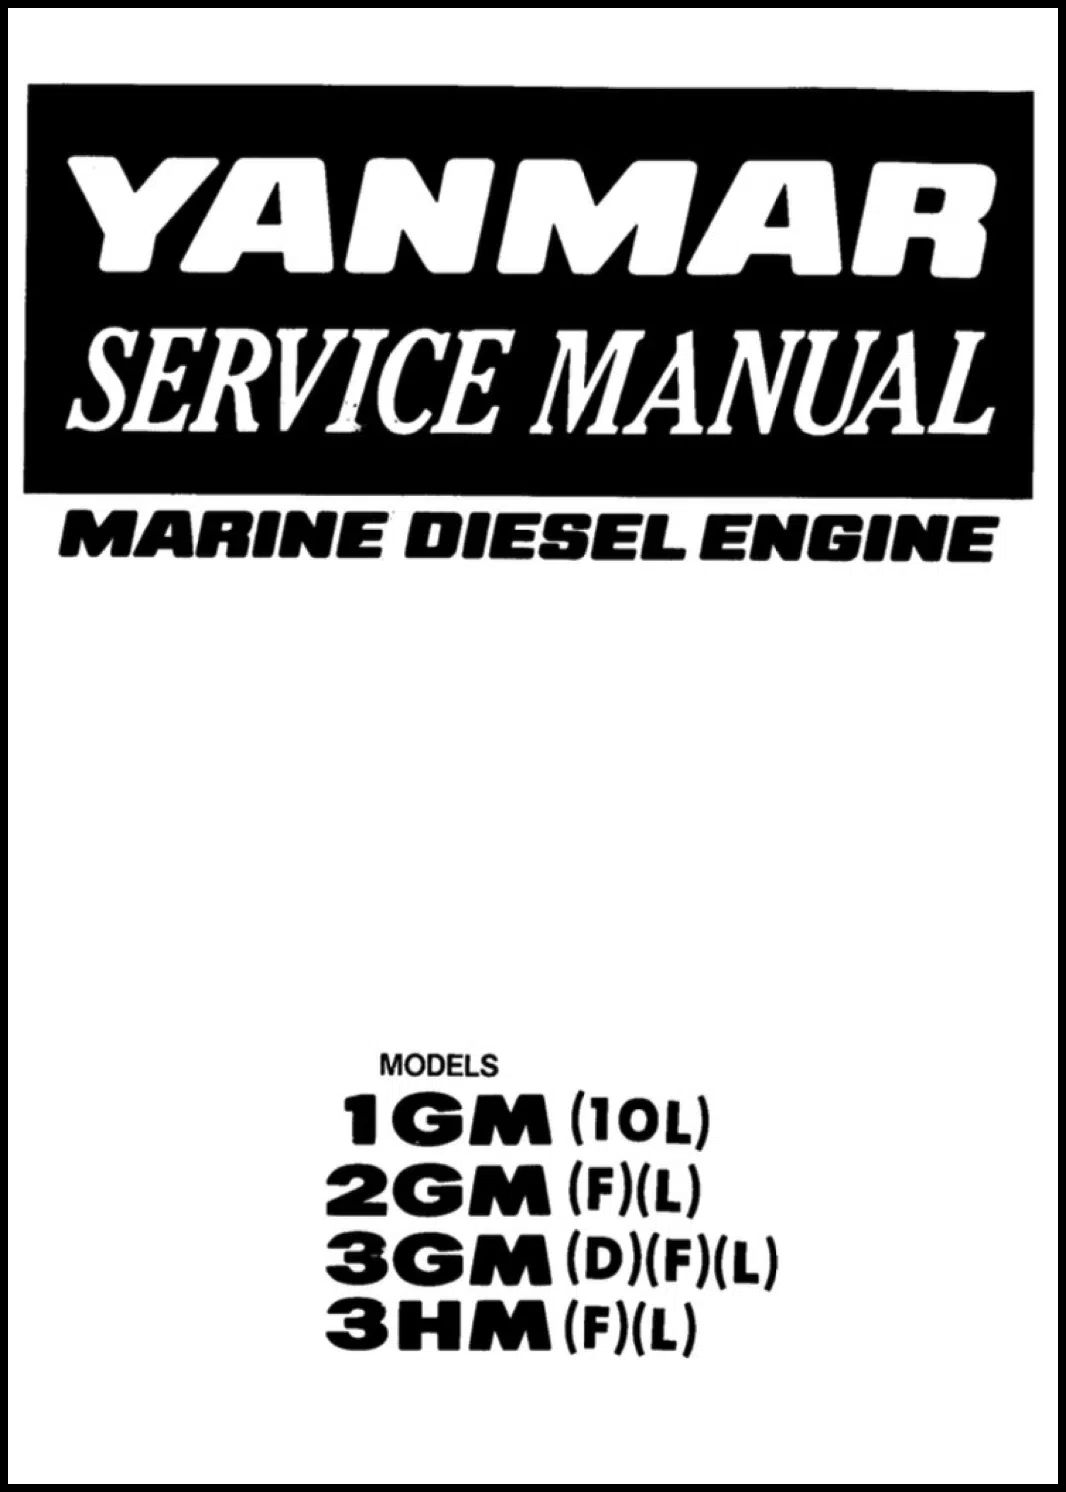 yanmar 2gm diesel engine manual